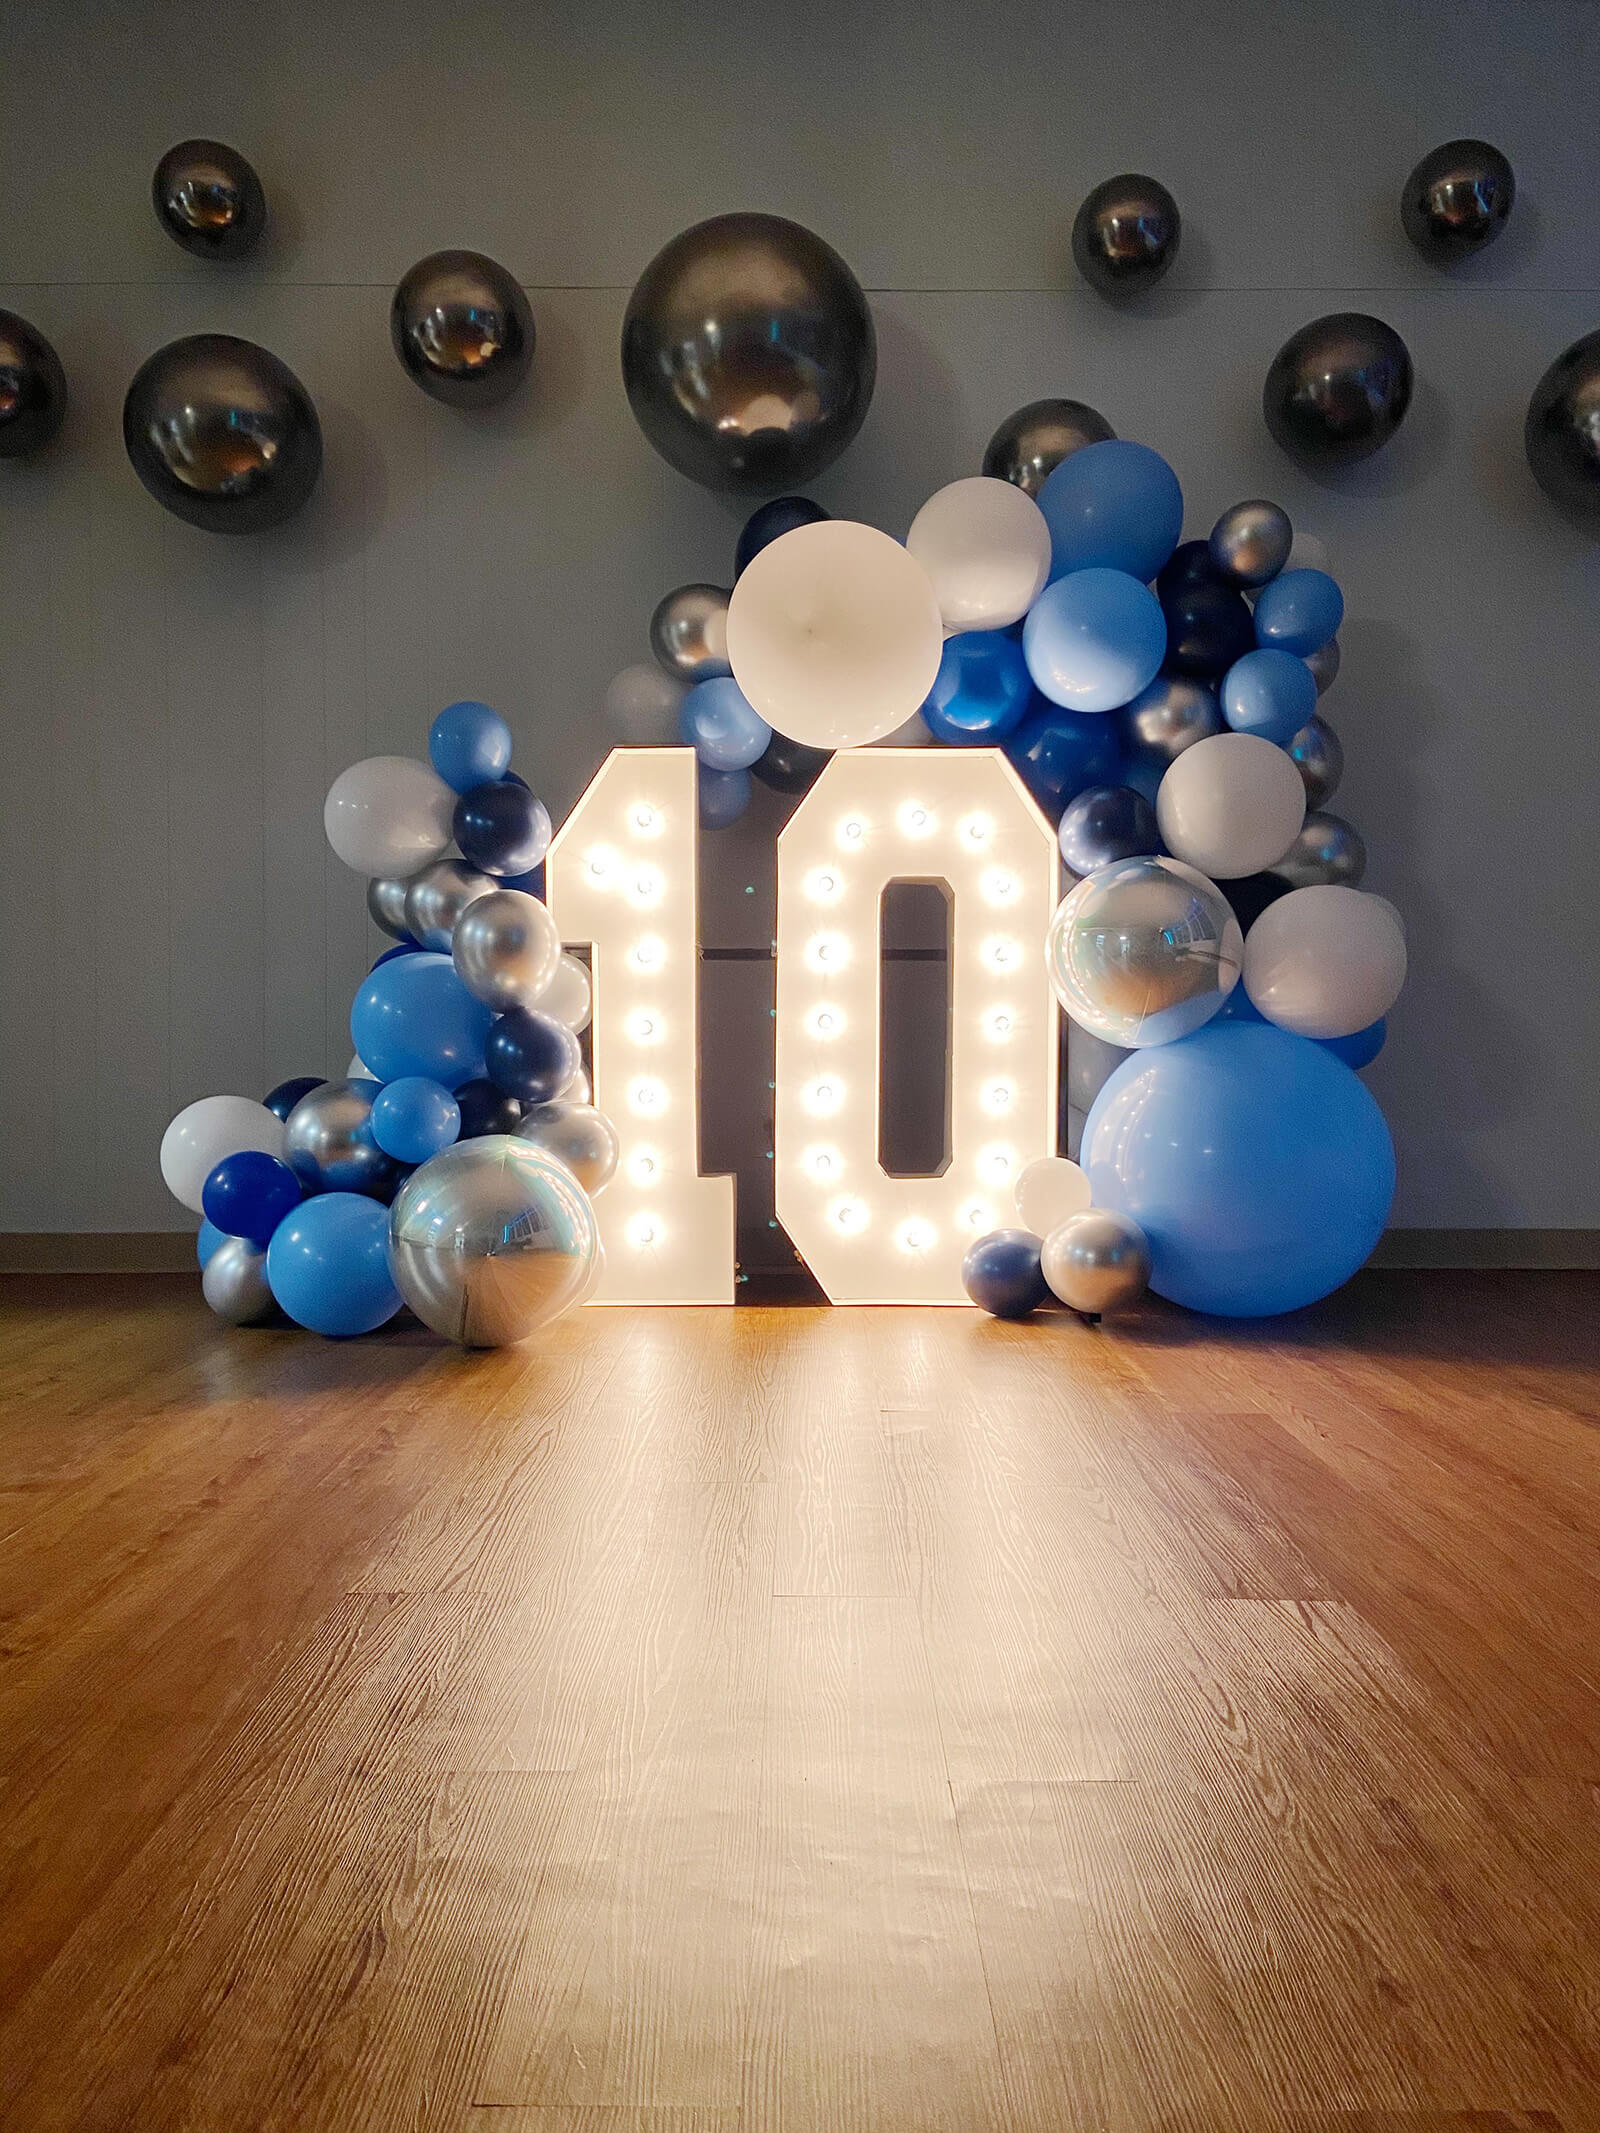 Alpha Lit lighted number 10th birthday display with balloon arch installation created by Just Peachy in Little Rock, Arkansas.